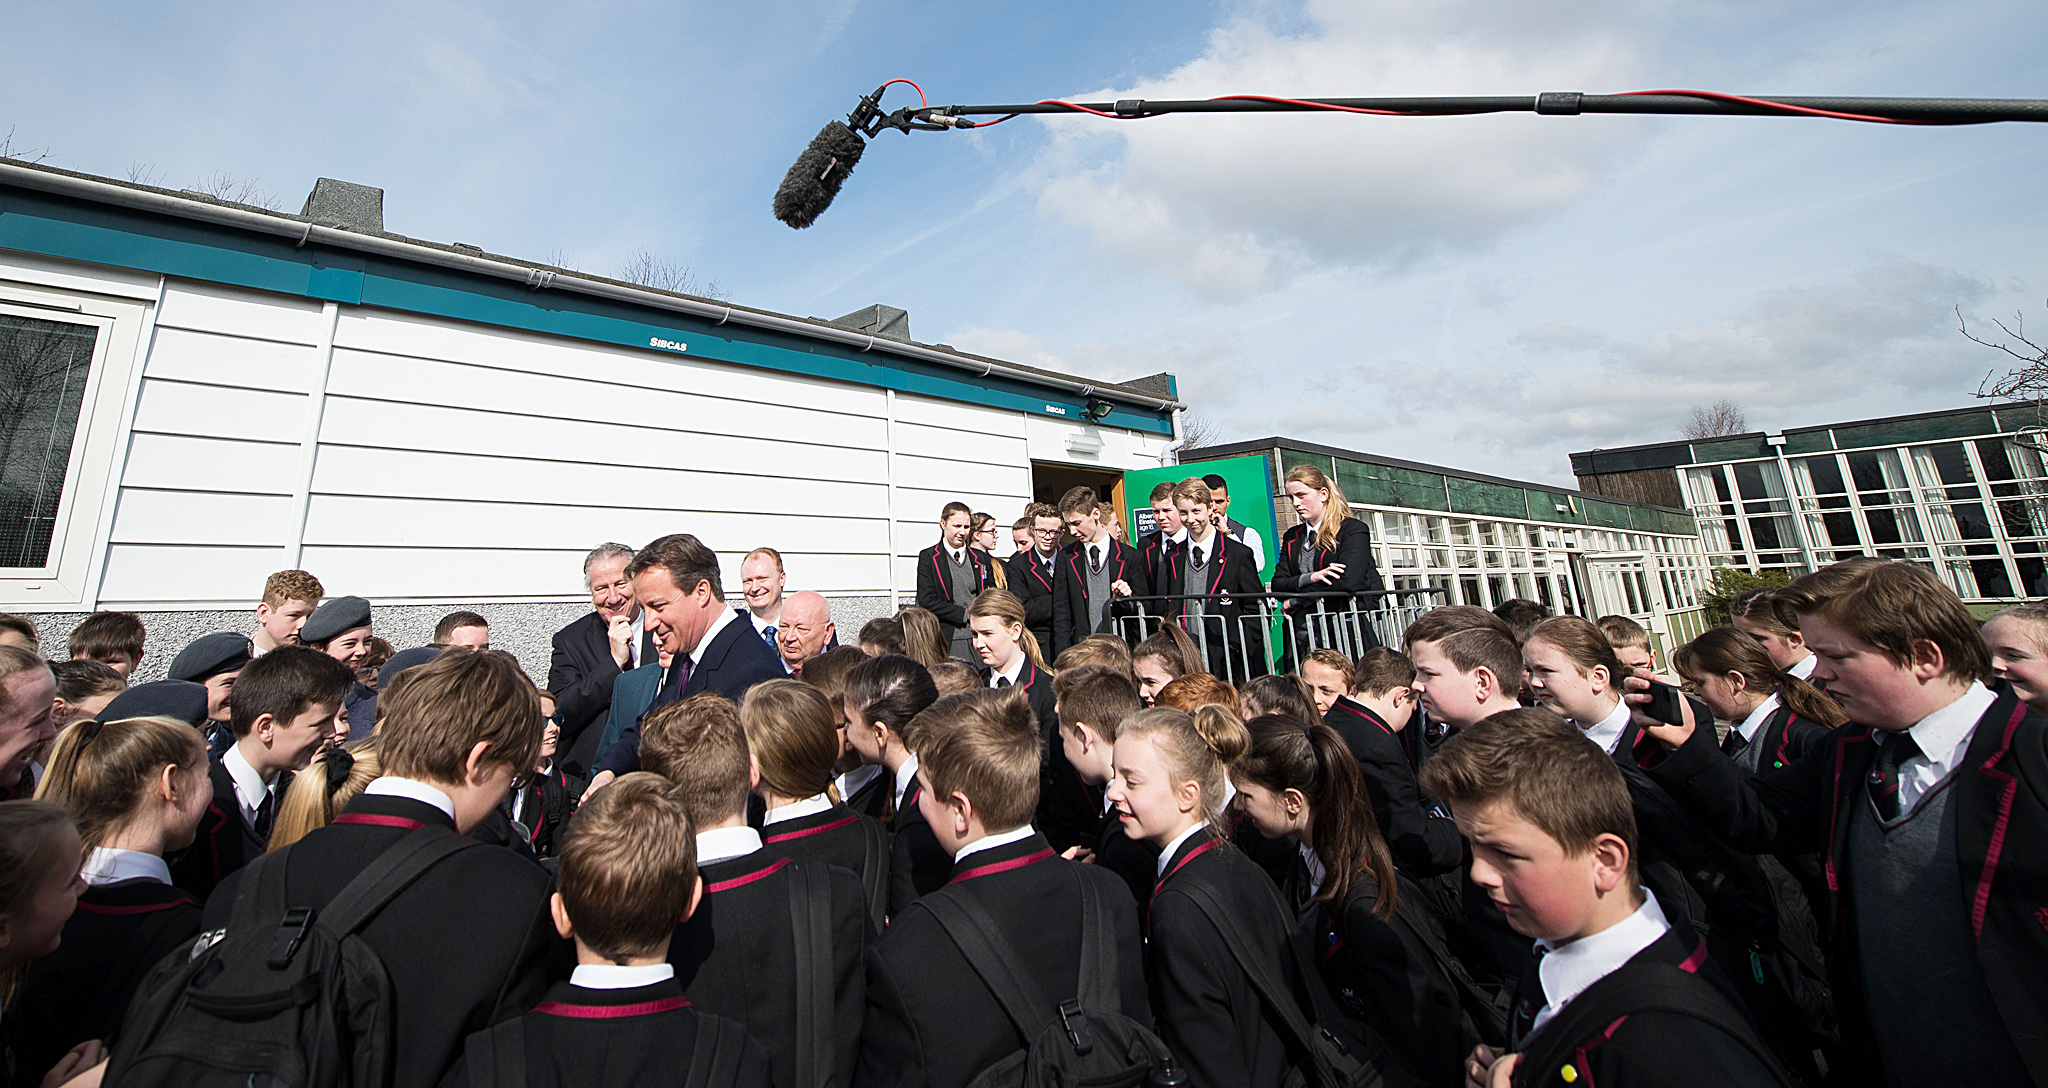 British Prime Minister and leader of the...British Prime Minister and leader of the Conservative Party, David Cameron, talks with pupils during a general election campaign visit to the Kings Leadership Academy in Warrington, northwest England, on April 2, 2015. Cameron and opposition leader Ed Miliband face their one and only live television debate of the election campaign on April 2, along with five others in a seven-way contest.  AFP PHOTO / POOL / LEON NEALLEON NEAL/AFP/Getty Images